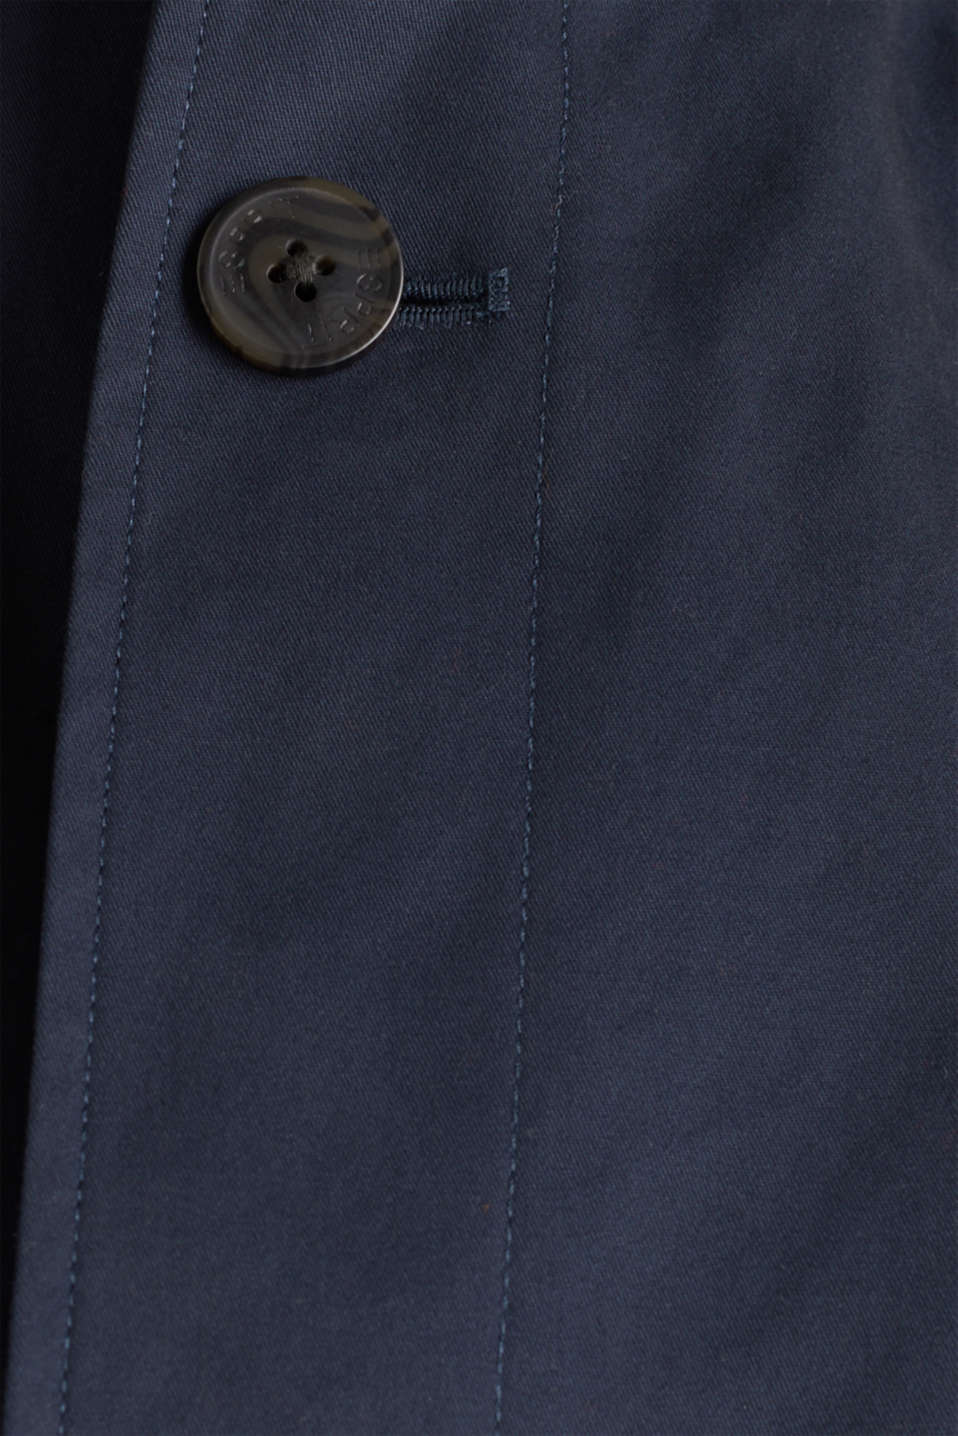 Coat with a stand-up collar, 100% cotton, DARK BLUE, detail image number 3